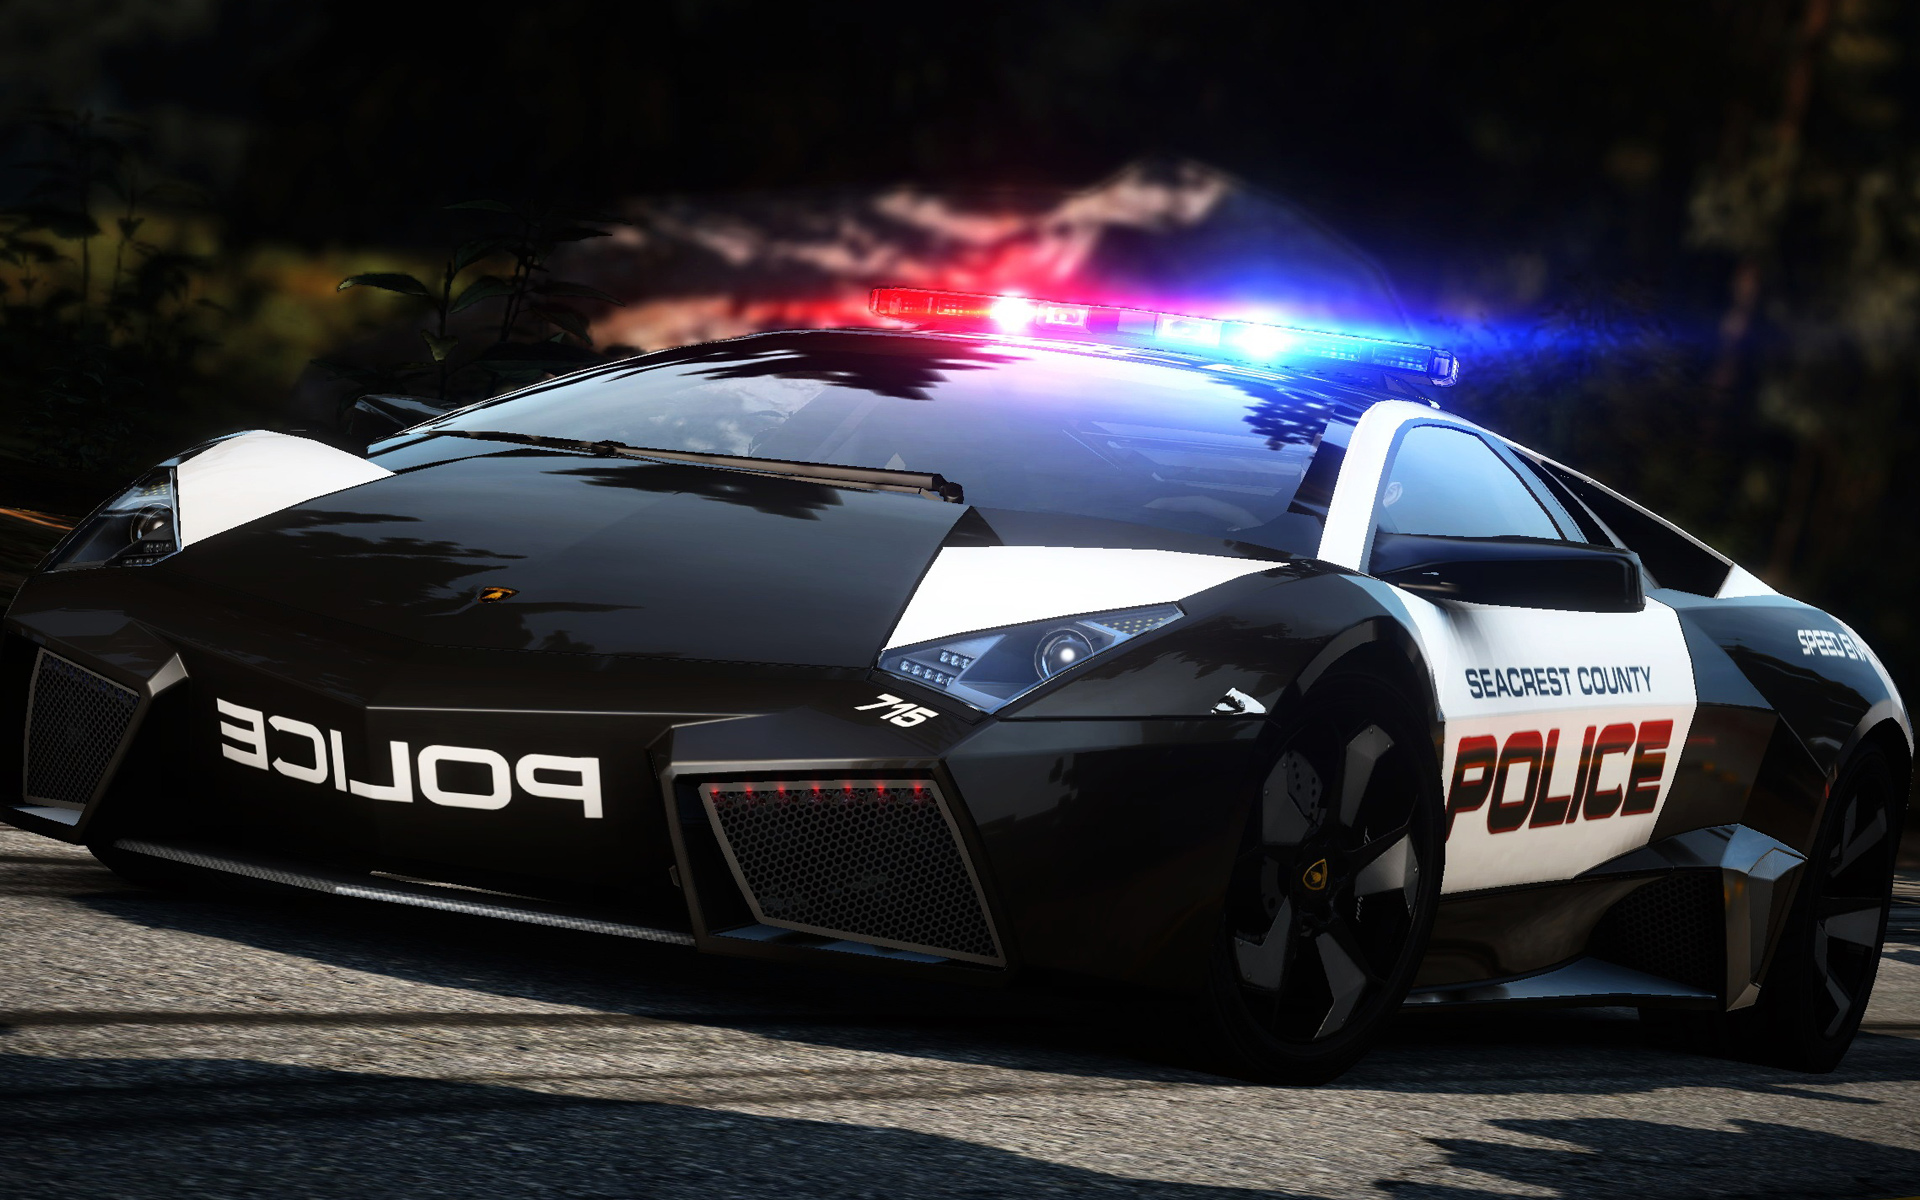 Lamborghini Reventon Hot Pursuit 643.41 Kb